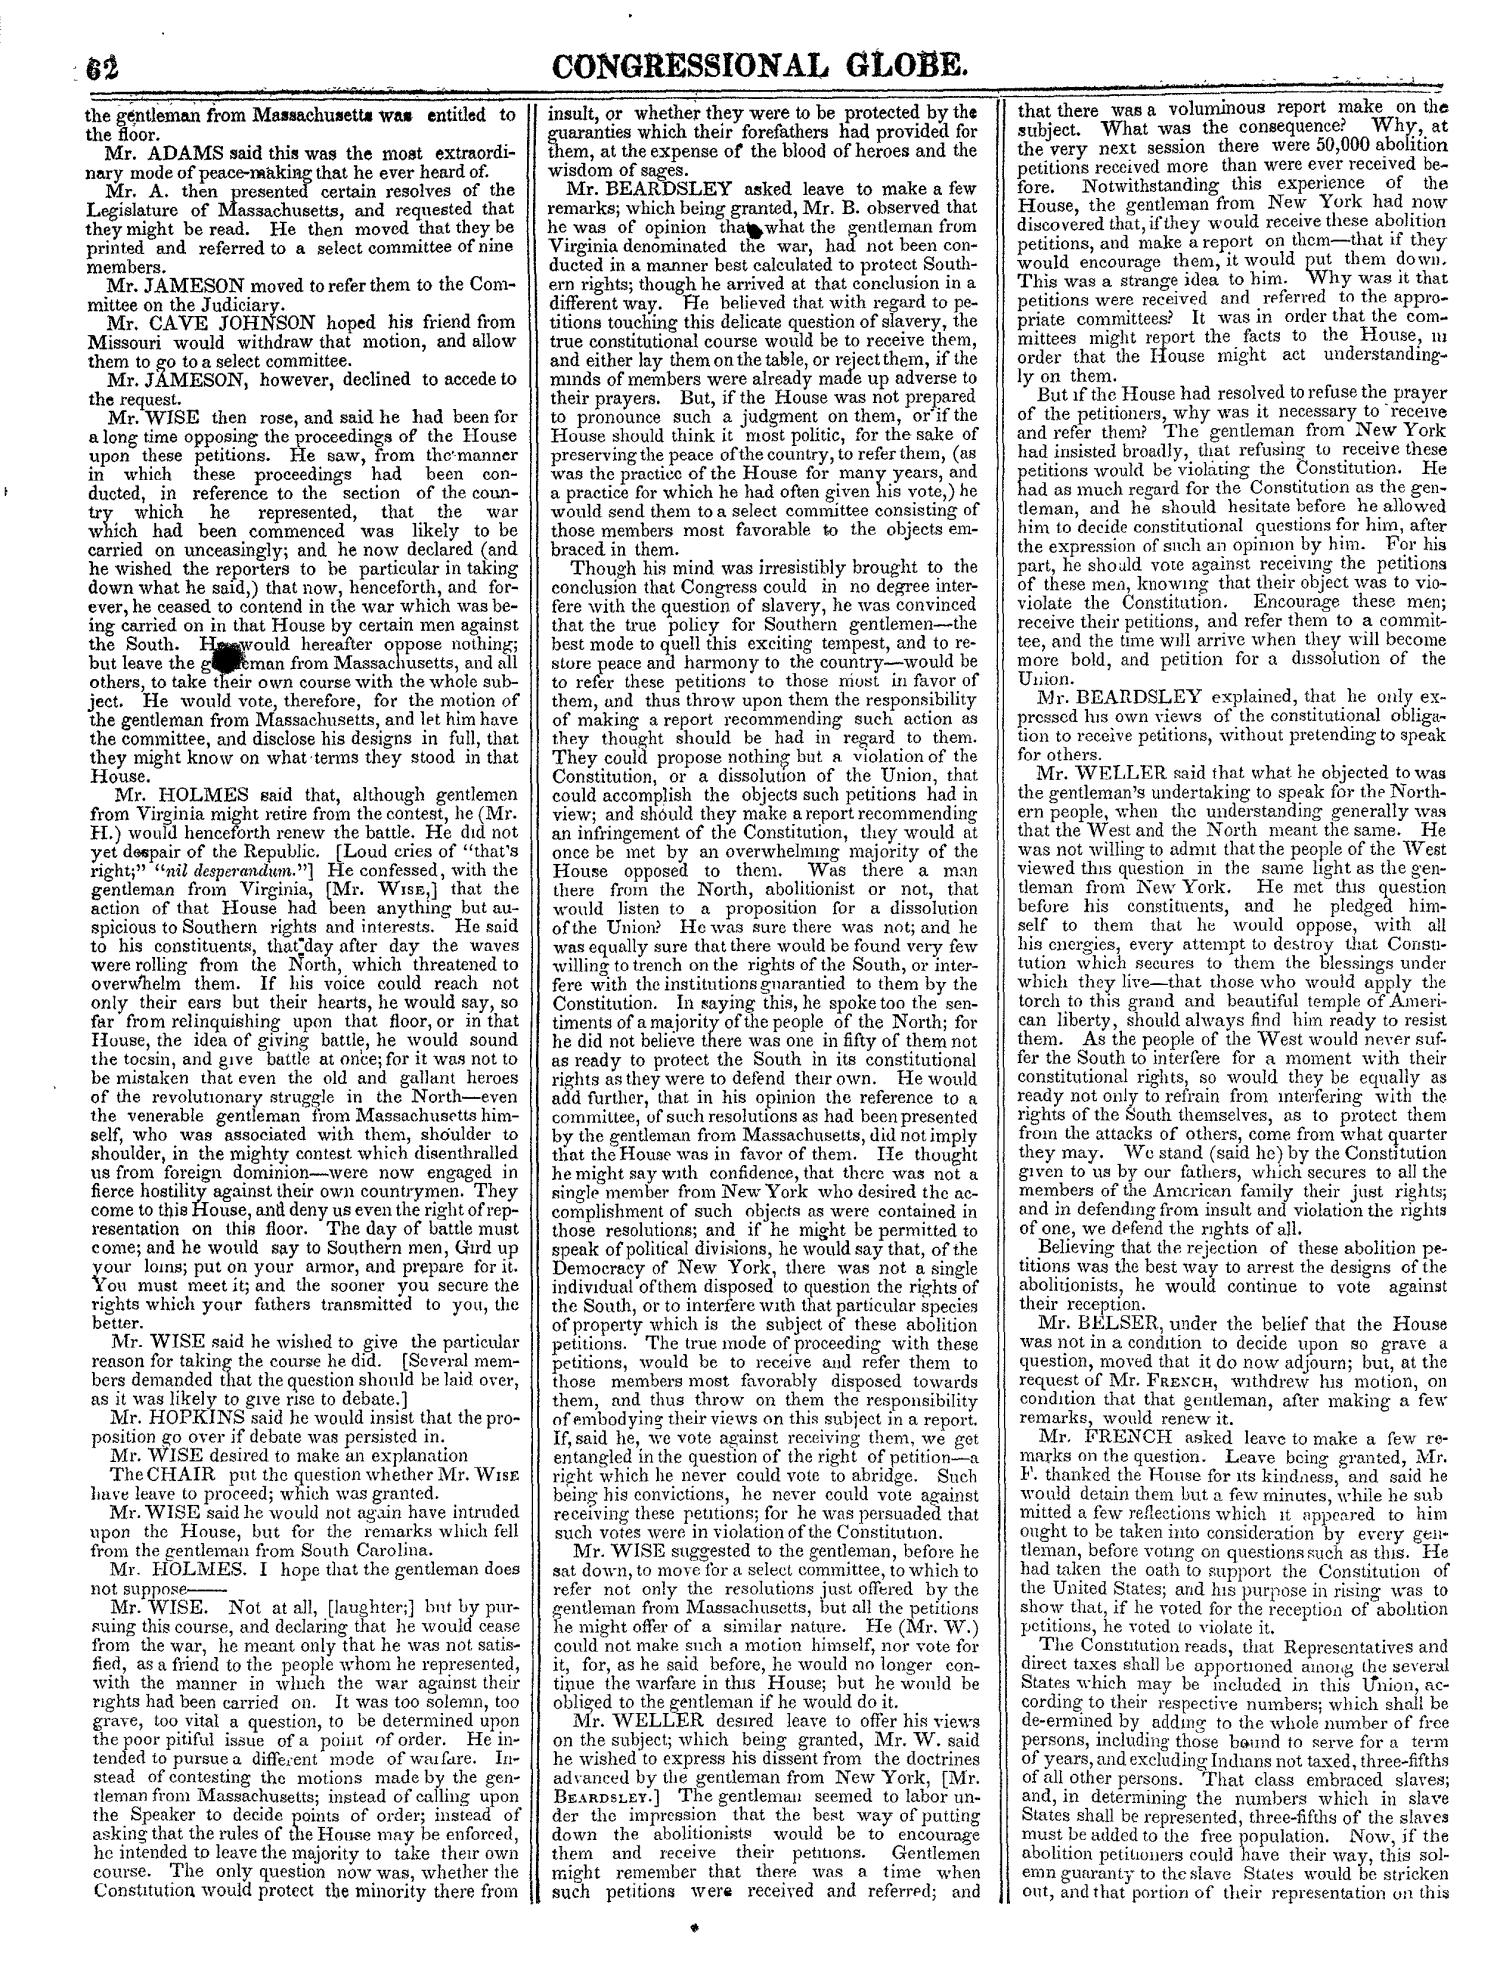 The Congressional Globe, Volume 13, Part 1: Twenty-Eighth Congress, First Session                                                                                                      62